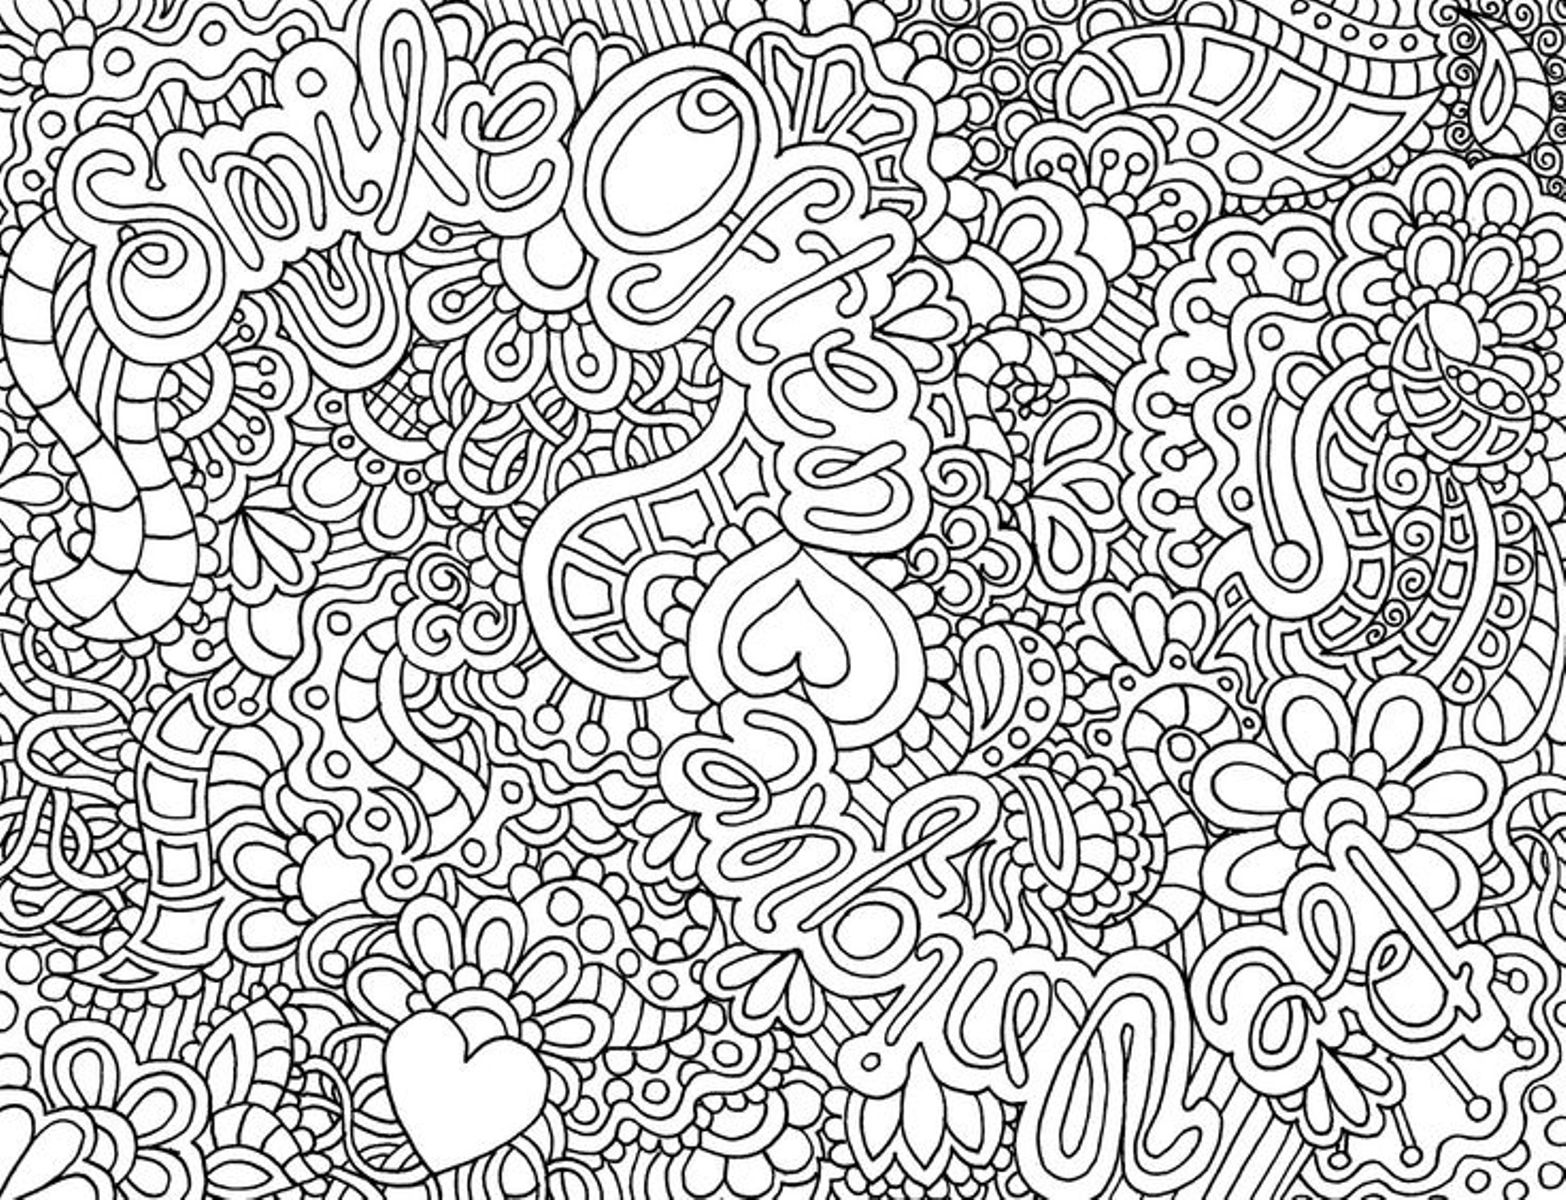 detailed coloring pages - Coloring Paages